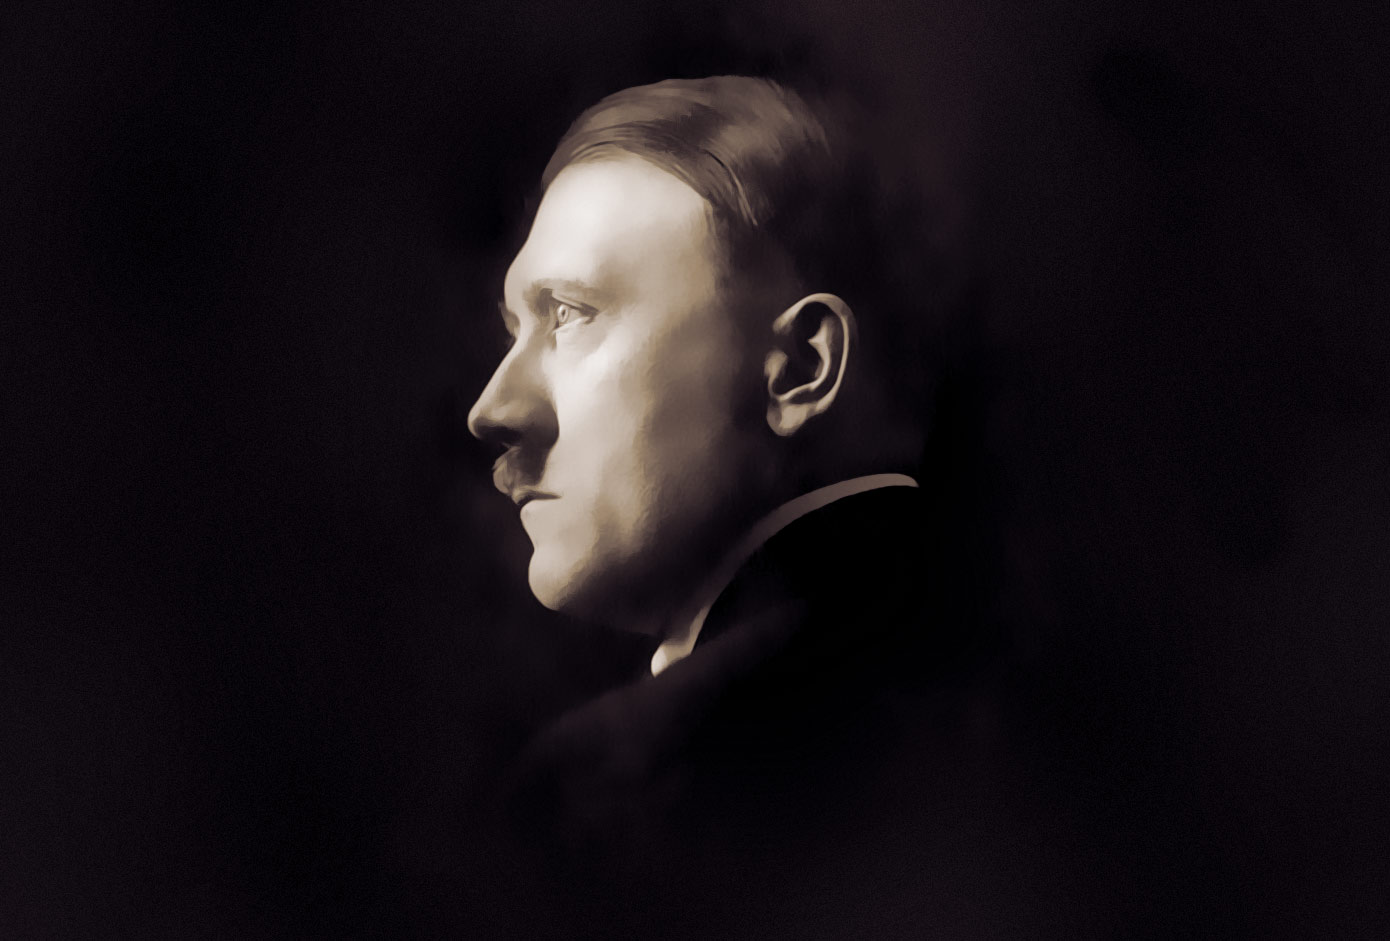 on the subject of adolf hitler national vanguard on the 128th anniversary of his birth today we offer some seldom seen statements made regarding adolf hitler the first great leader of national socialism